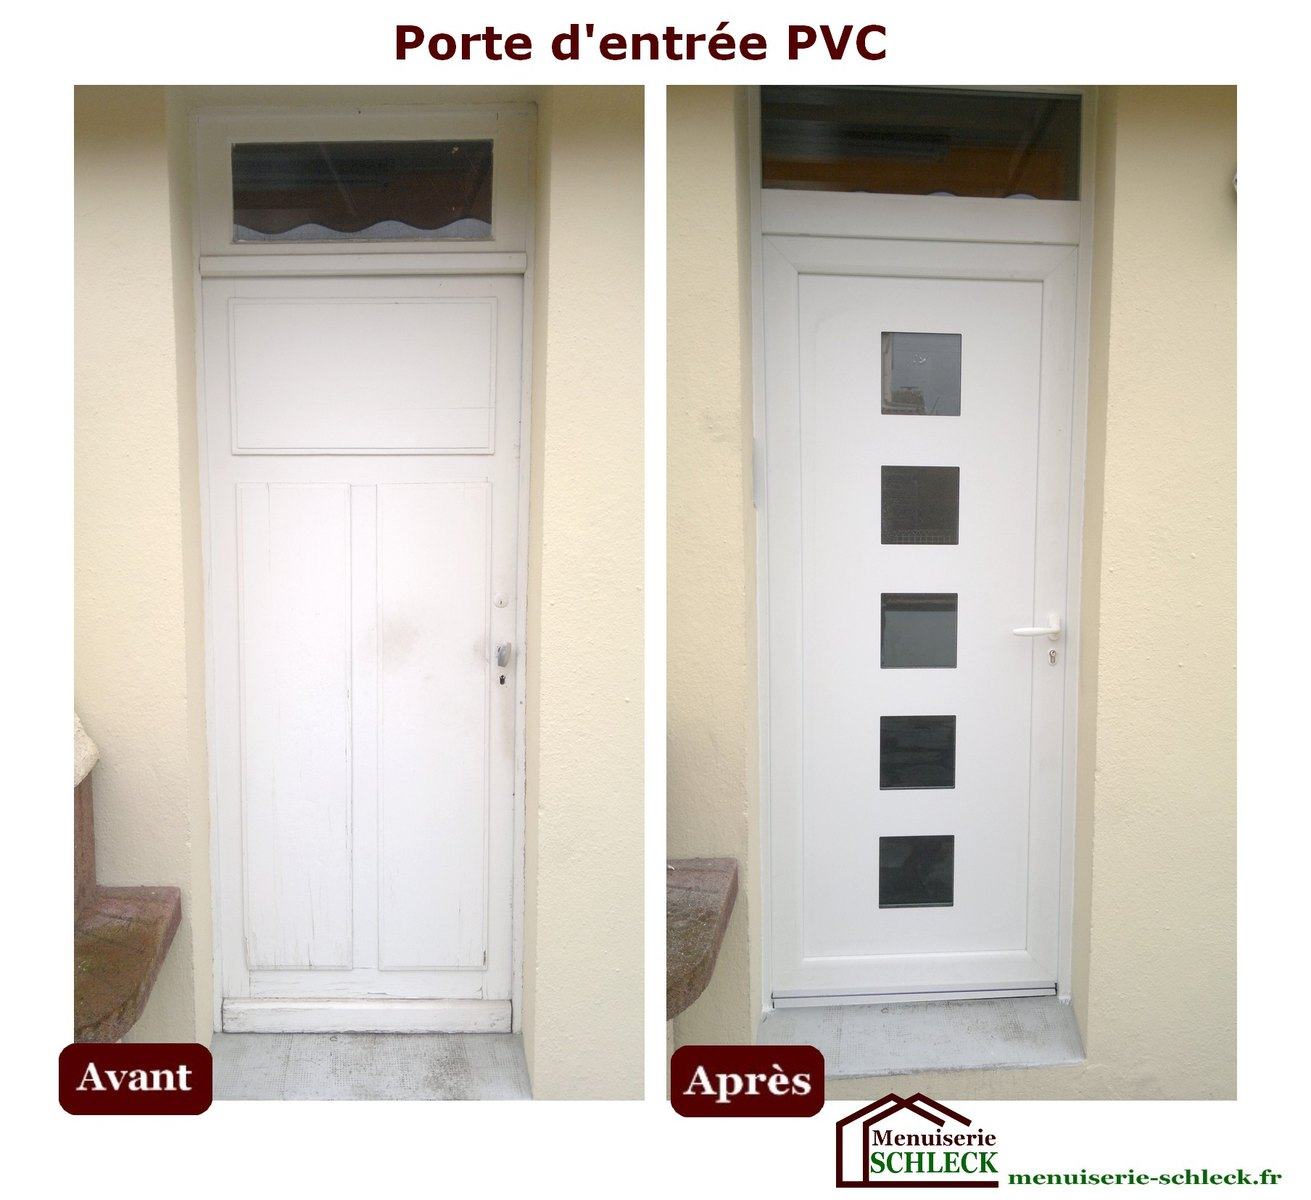 Menuiserie rge schleck nos r alisations for Porte fenetre renovation pvc